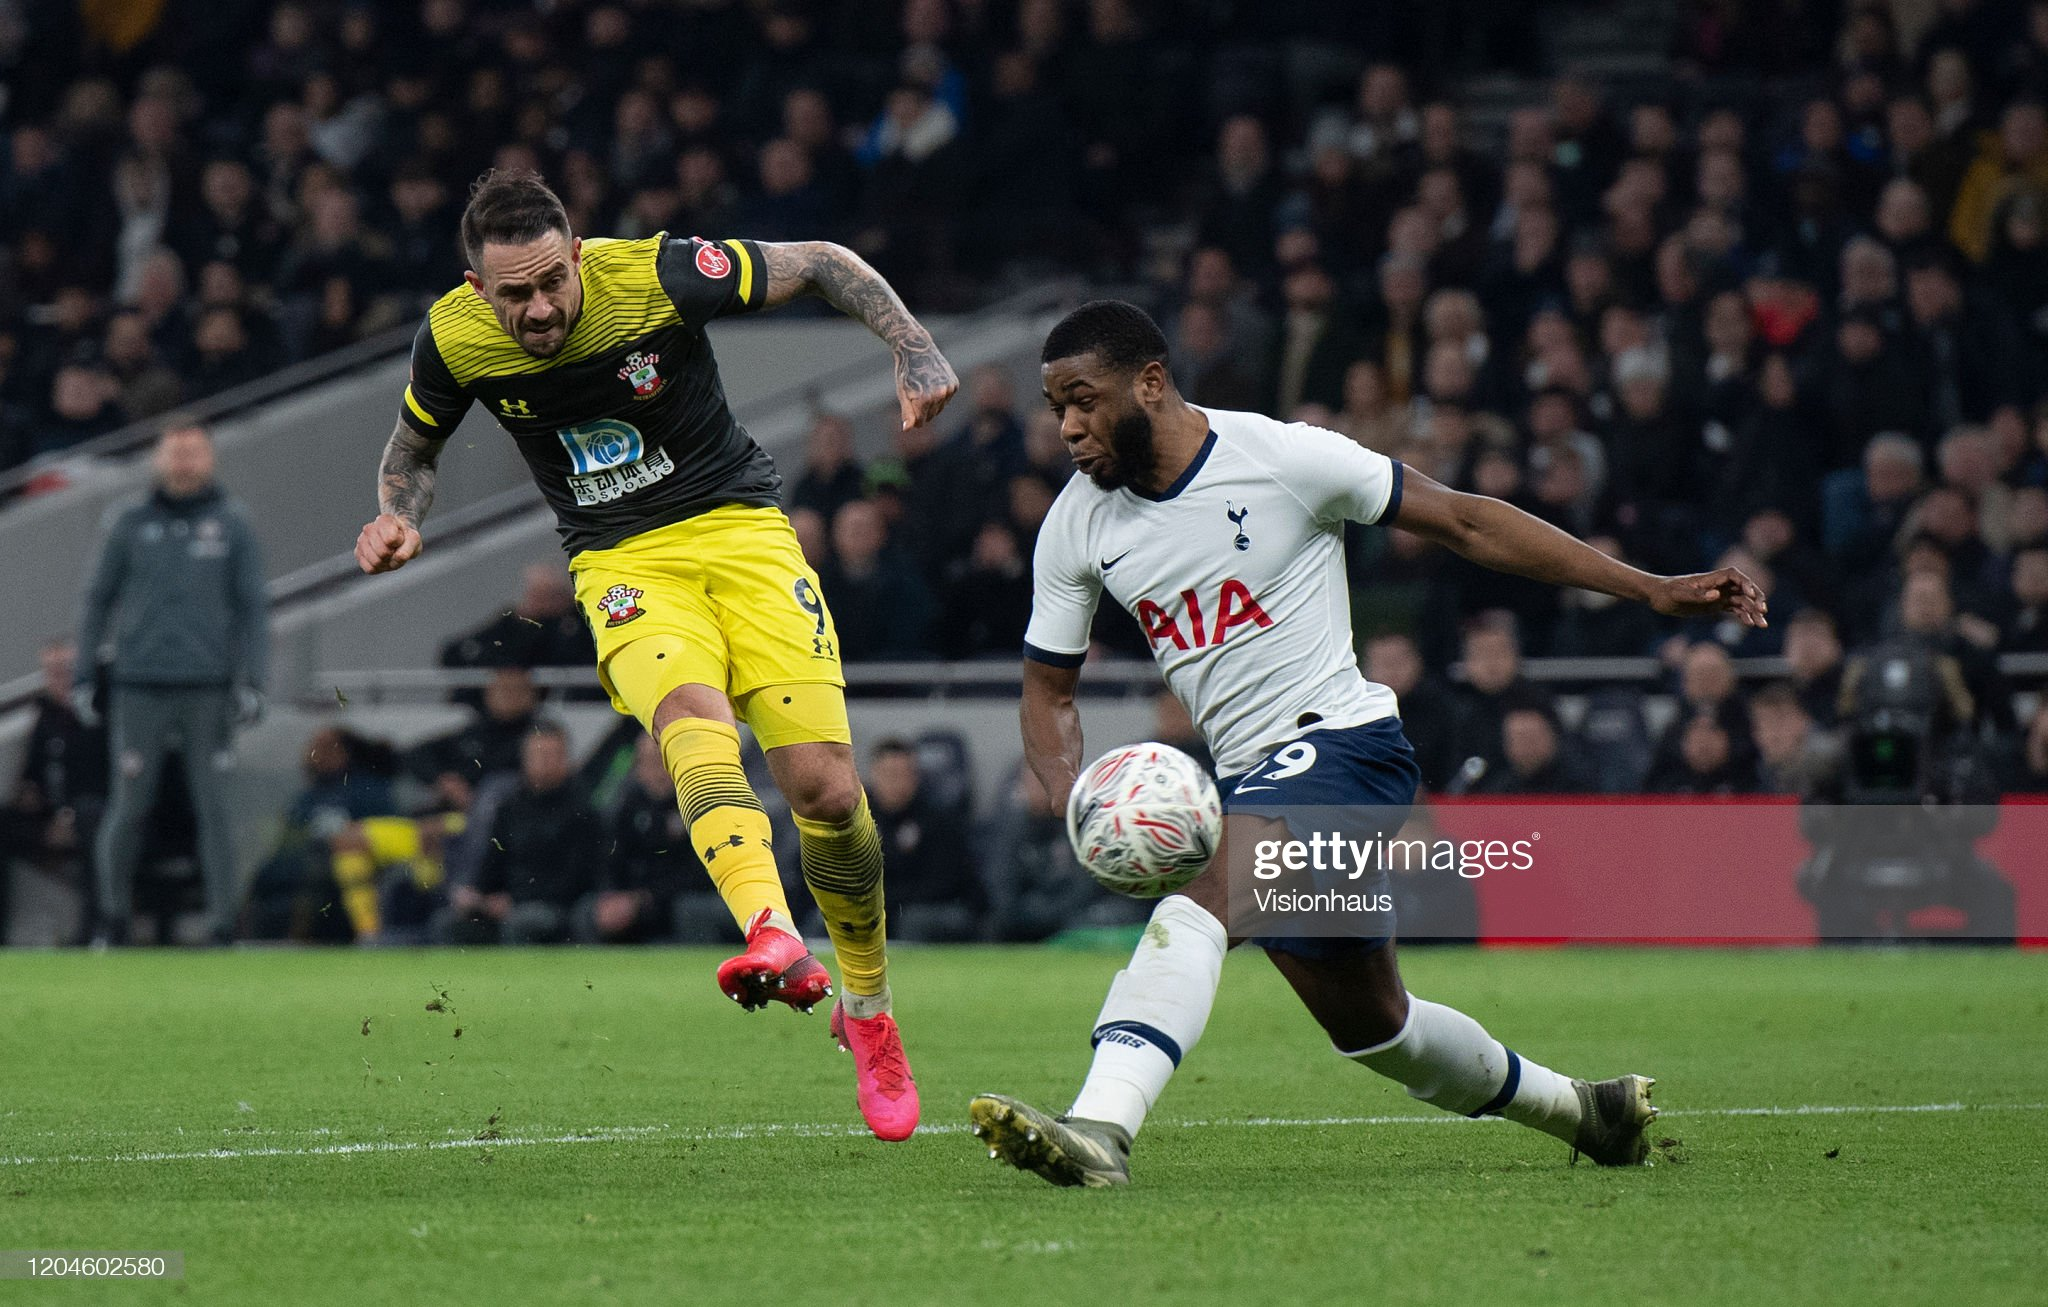 Southampton vs Tottenham preview, prediction and odds